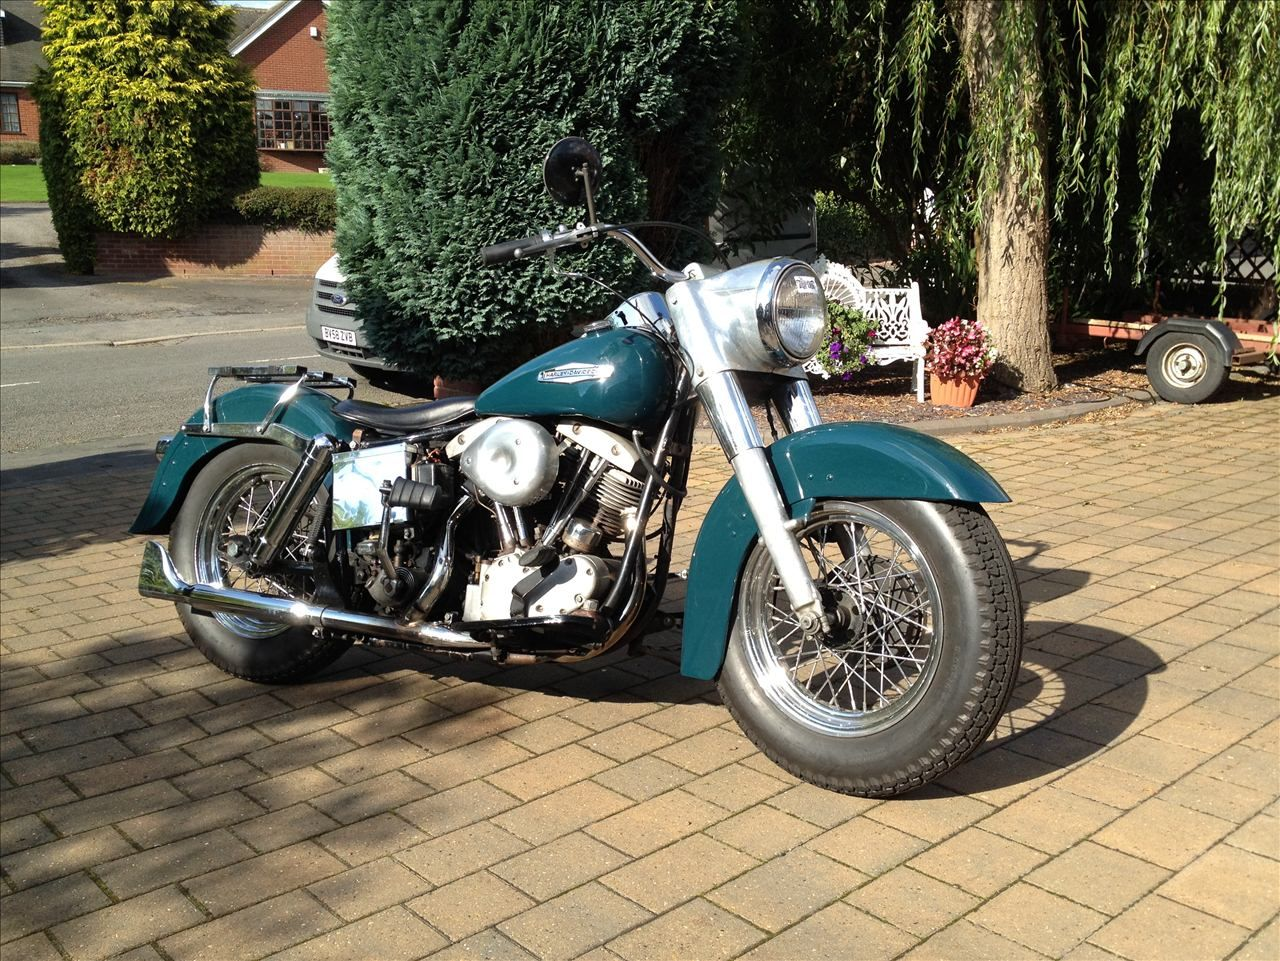 For Sale! (To bad its in the UK) | Bikes | Harley bikes, Harley